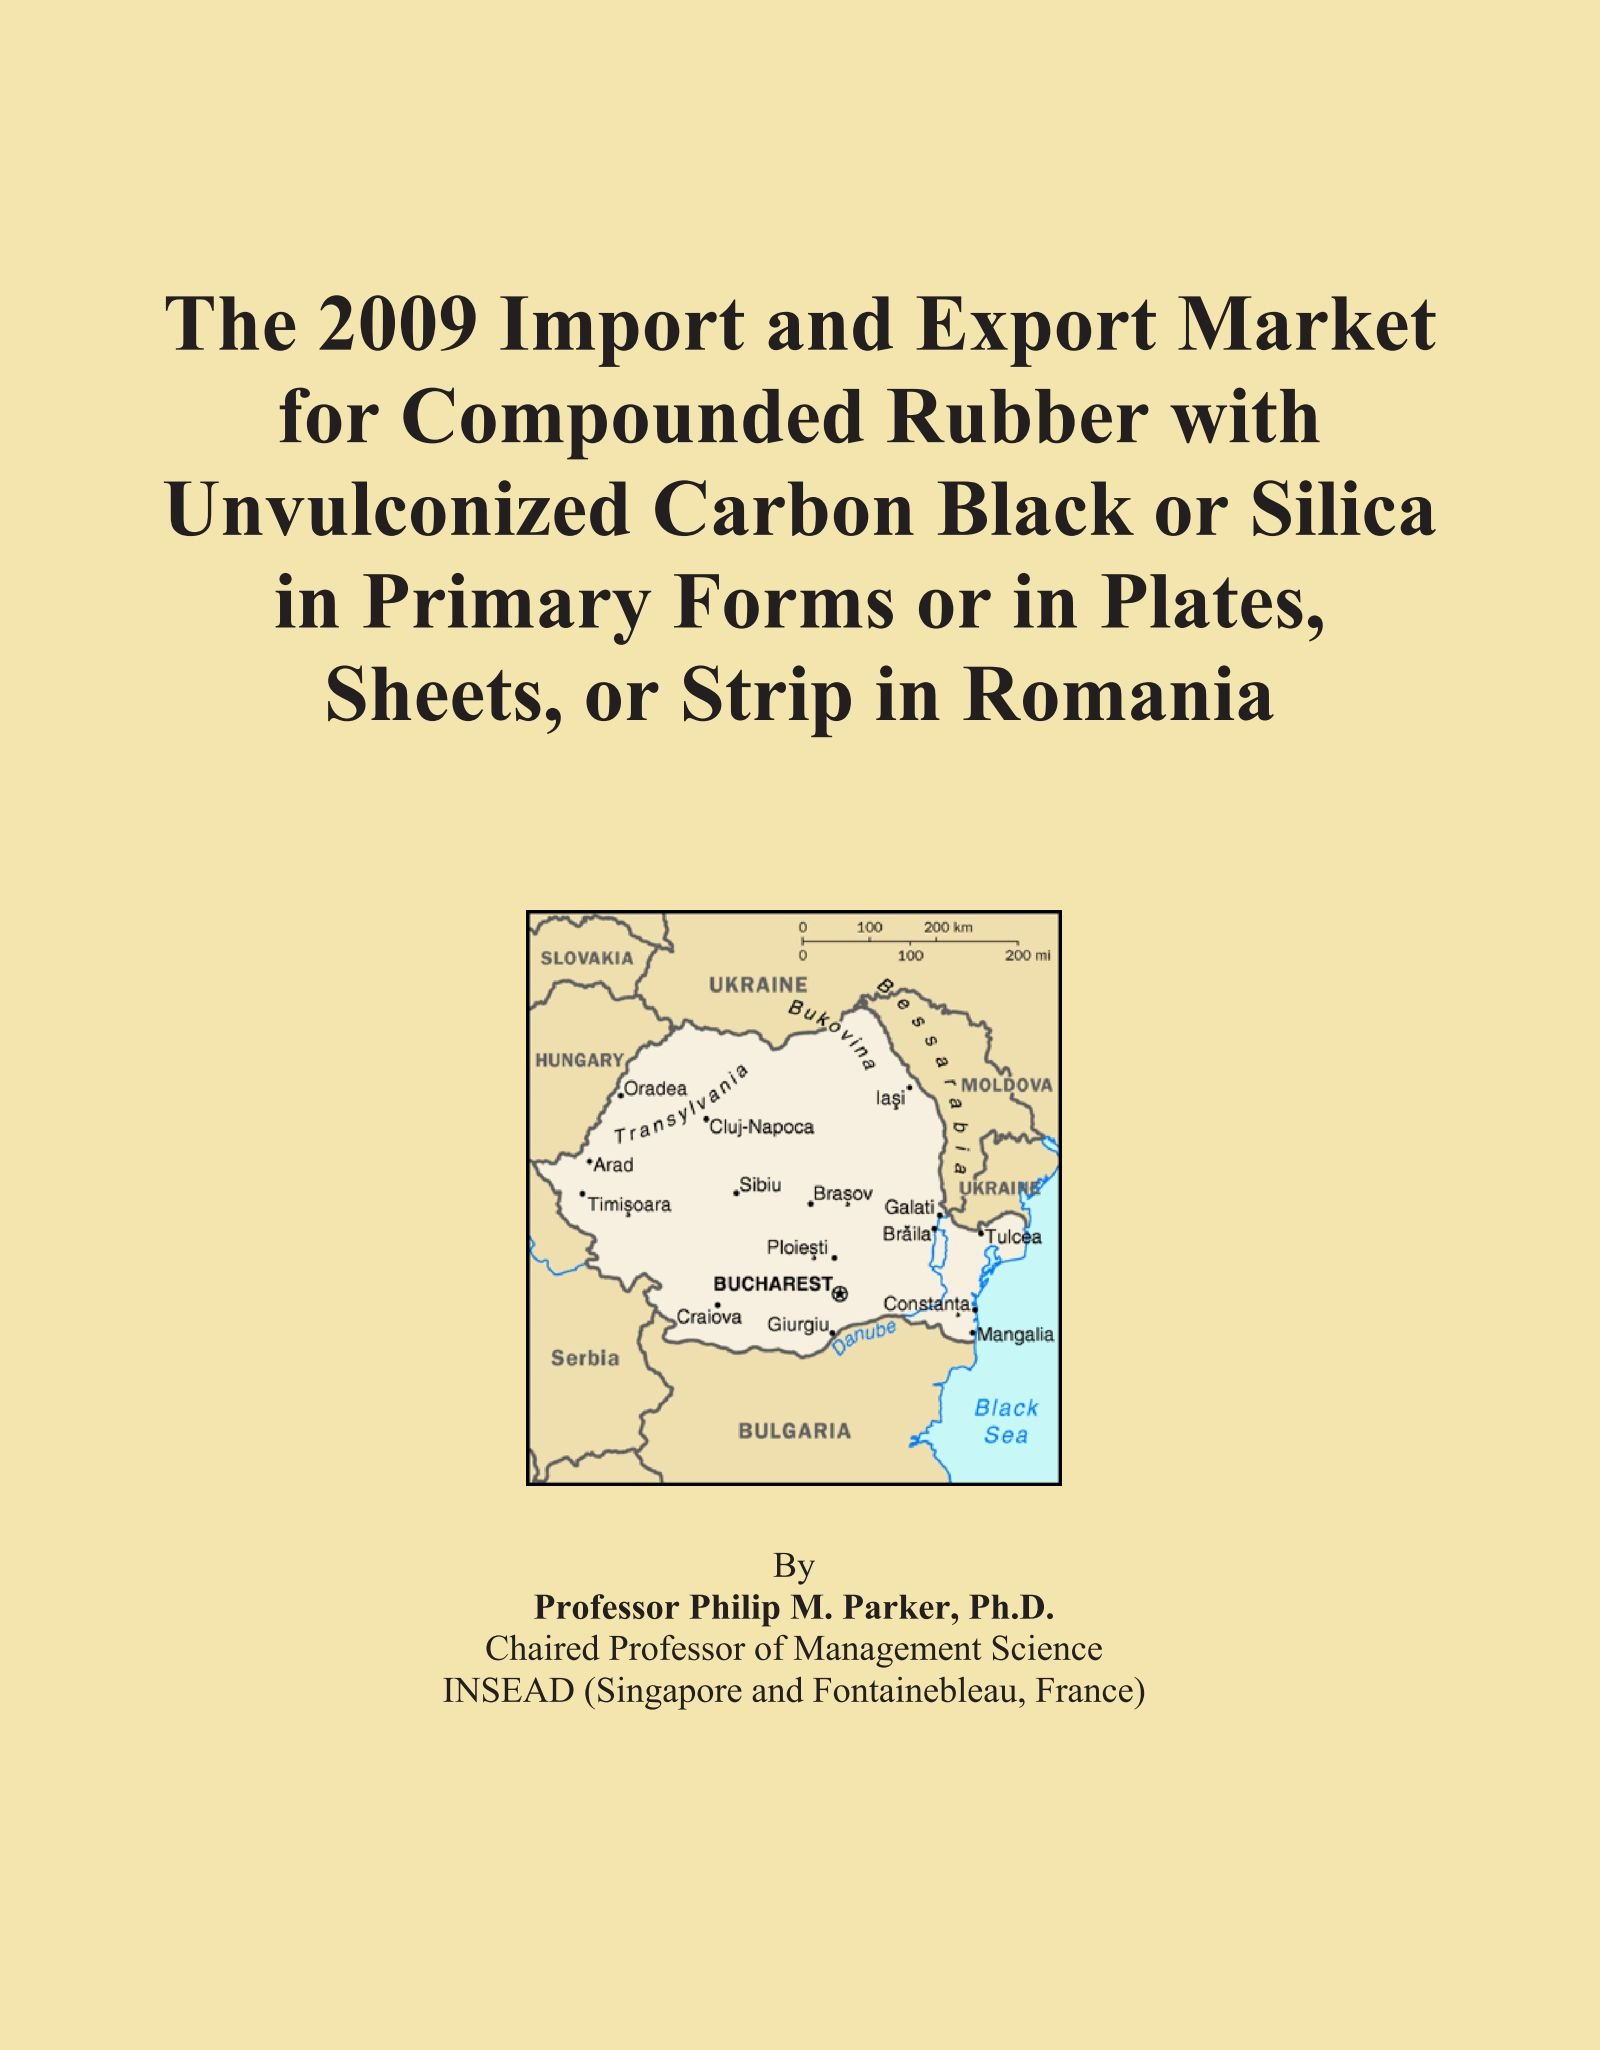 Download The 2009 Import and Export Market for Compounded Rubber with Unvulconized Carbon Black or Silica in Primary Forms or in Plates, Sheets, or Strip in Romania PDF